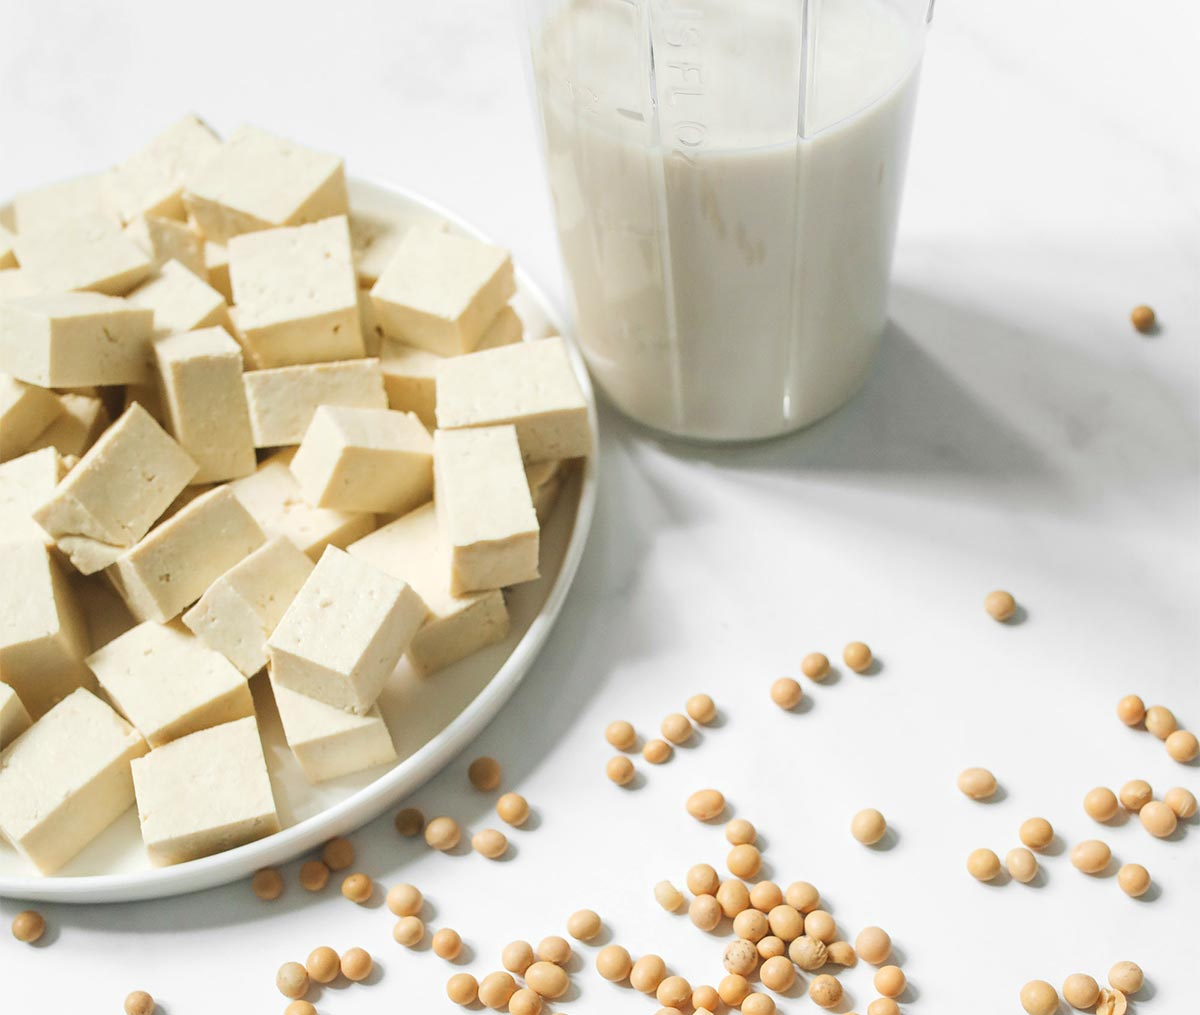 Increase In Demand For Soy-Based Products